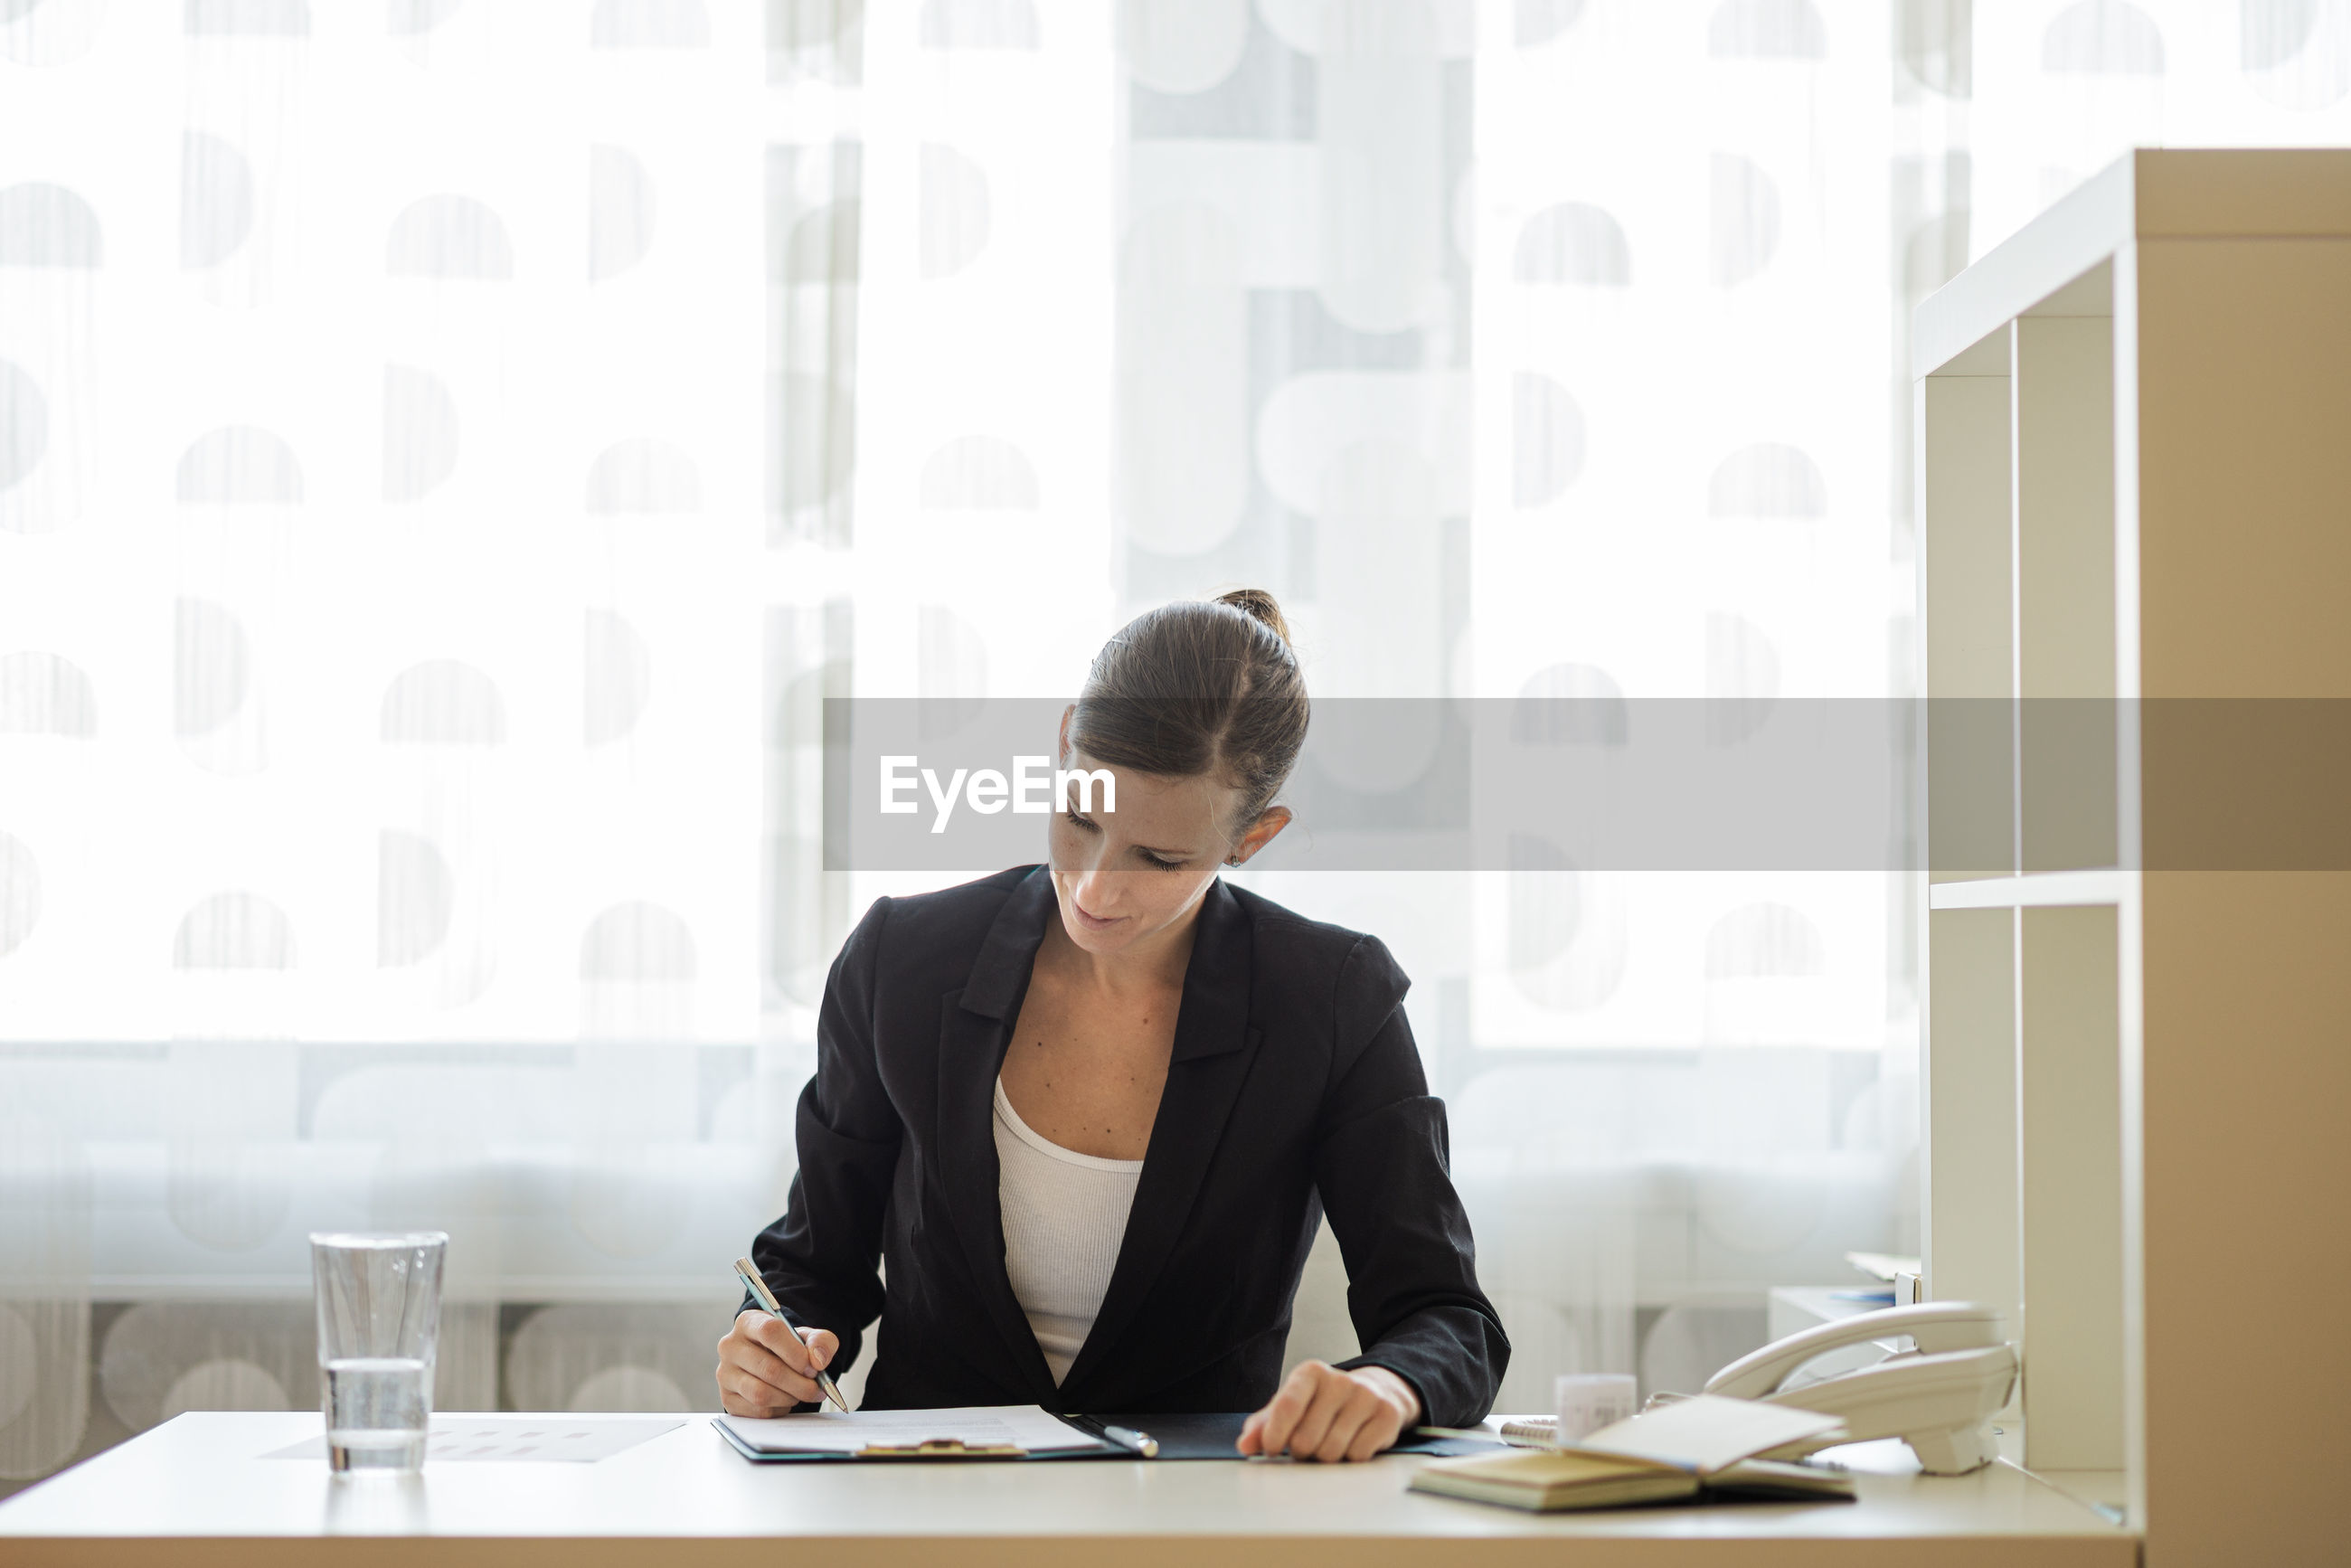 YOUNG WOMAN WORKING ON TABLE IN OFFICE